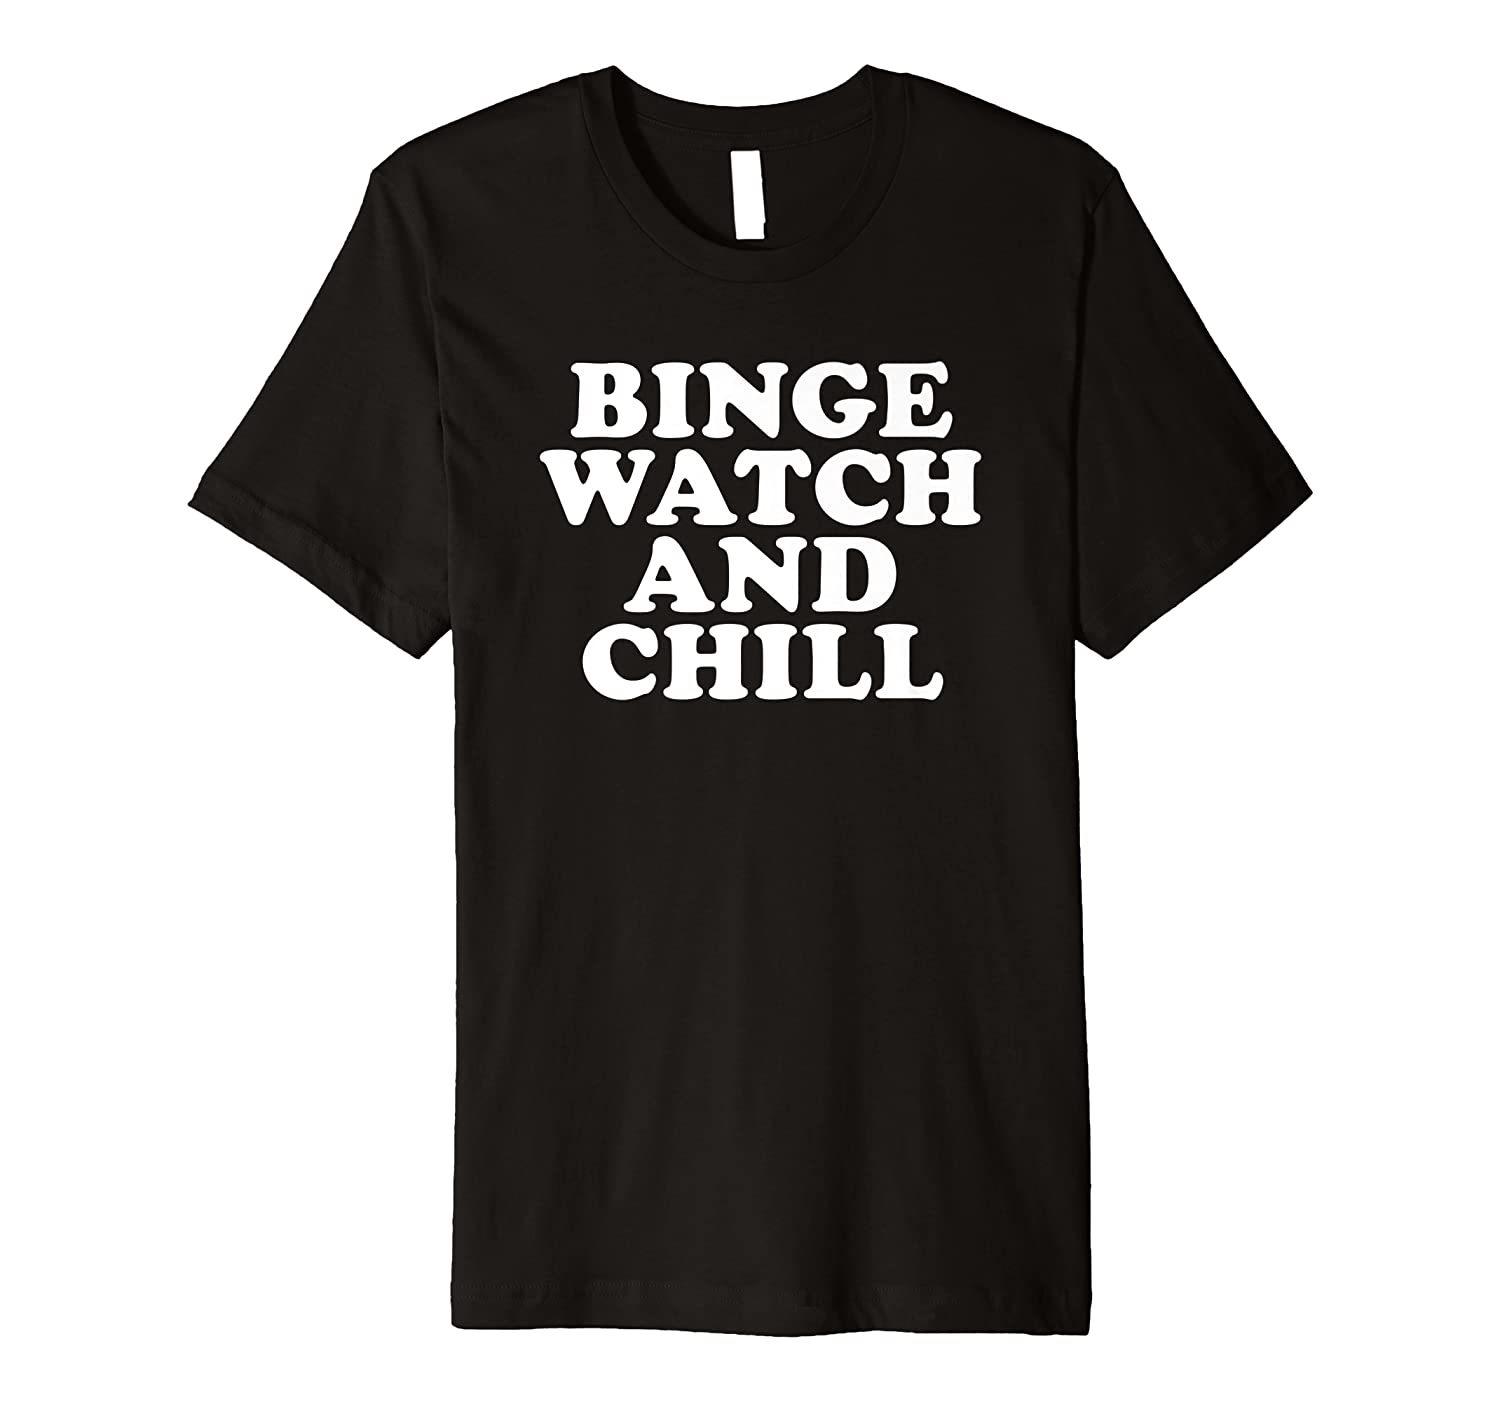 Amazon com: Bingewatching Shirt Binge Watch And Chill Couch